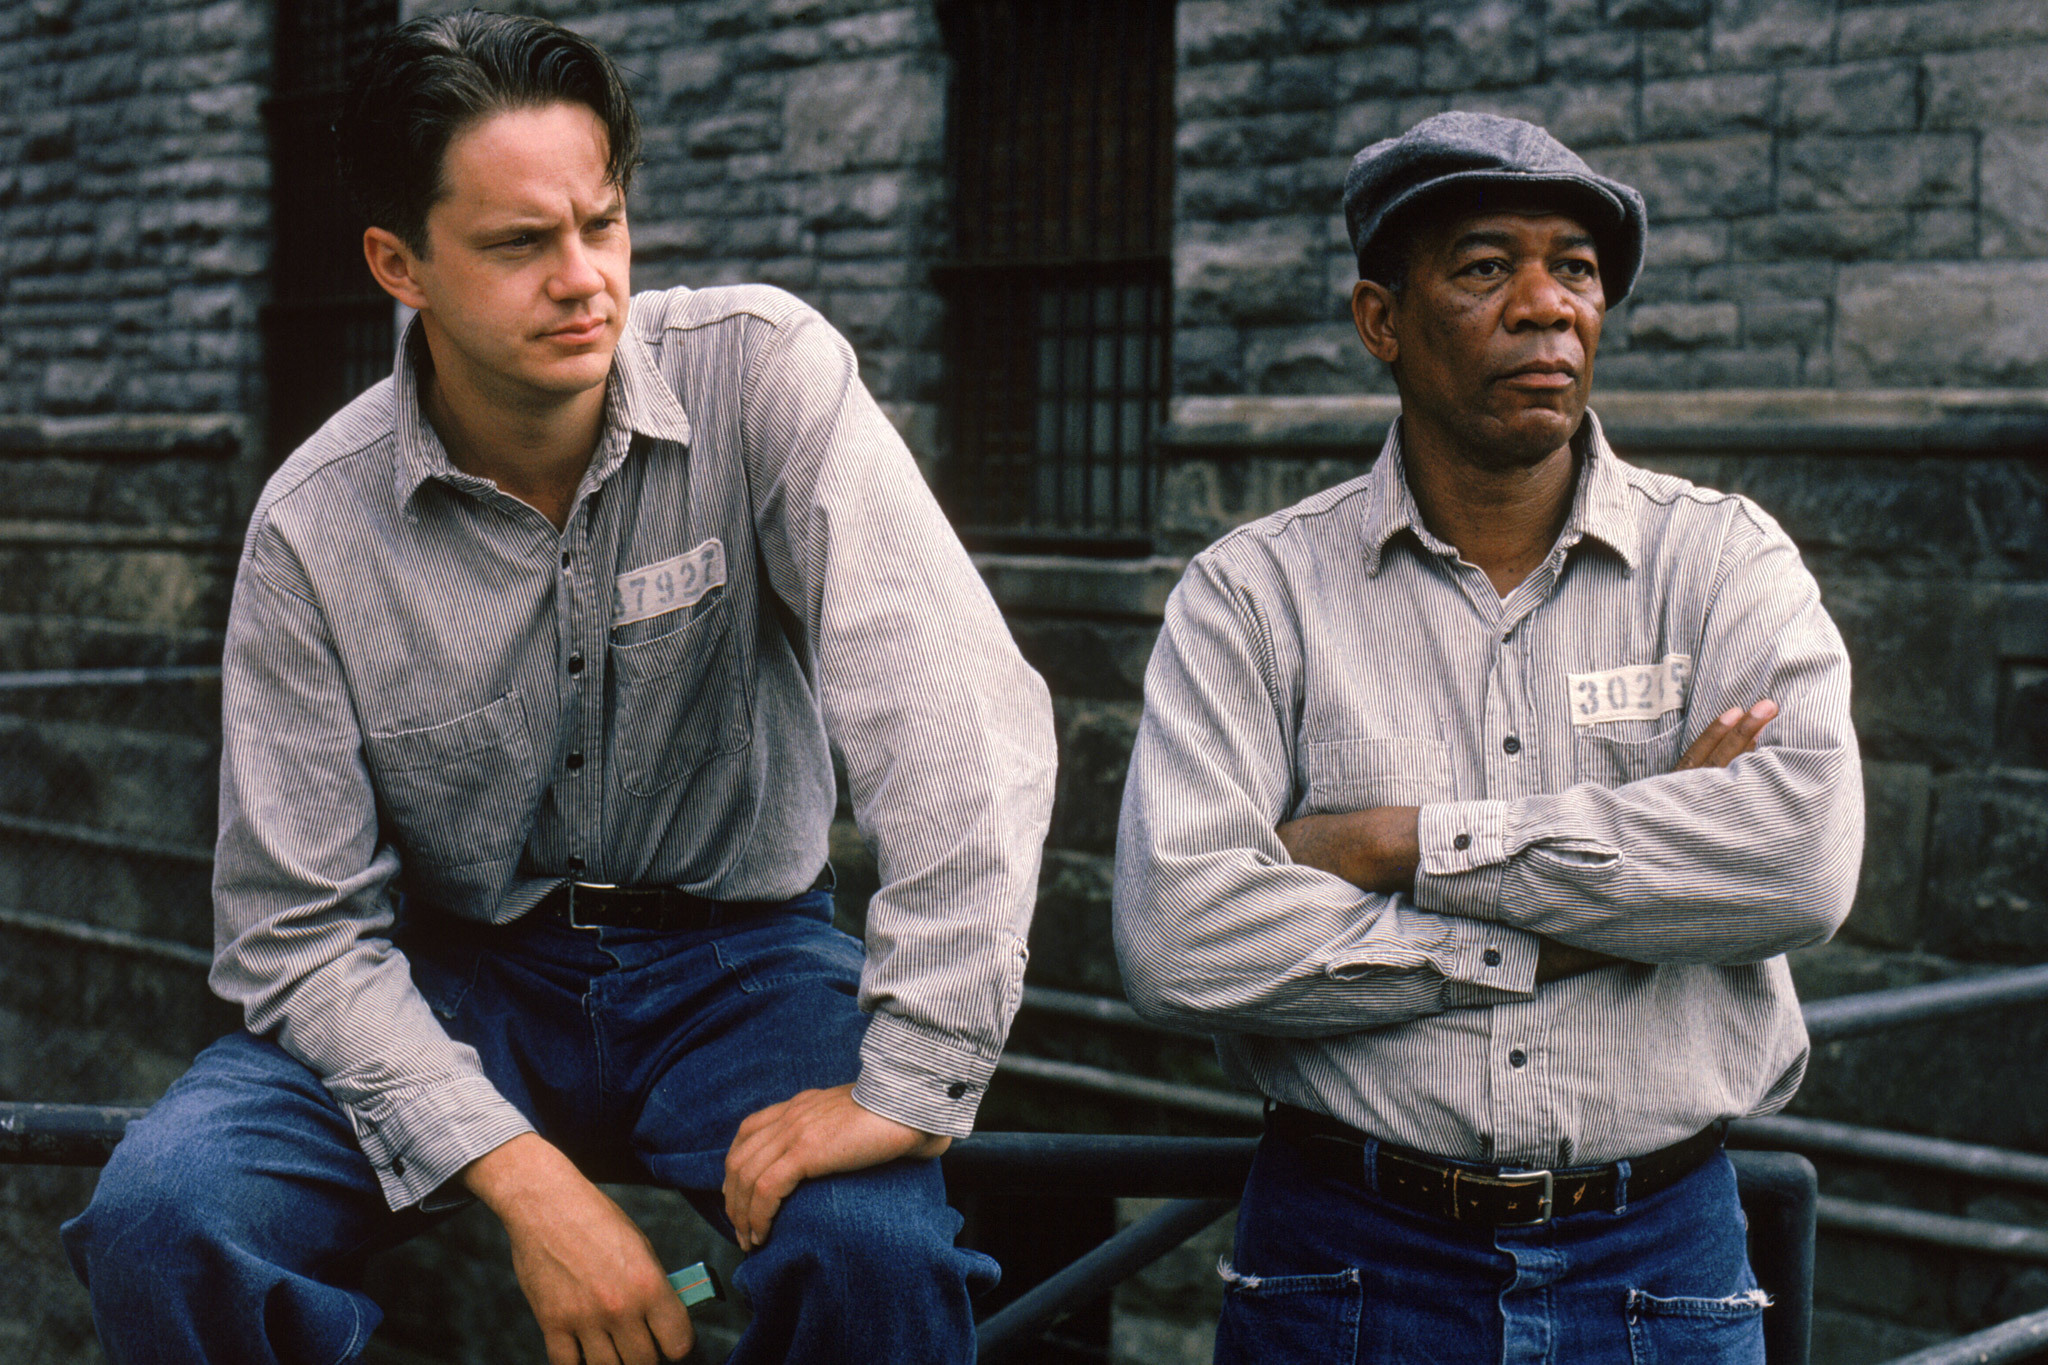 'The Shawshank Redemption' coming to King's Theatre